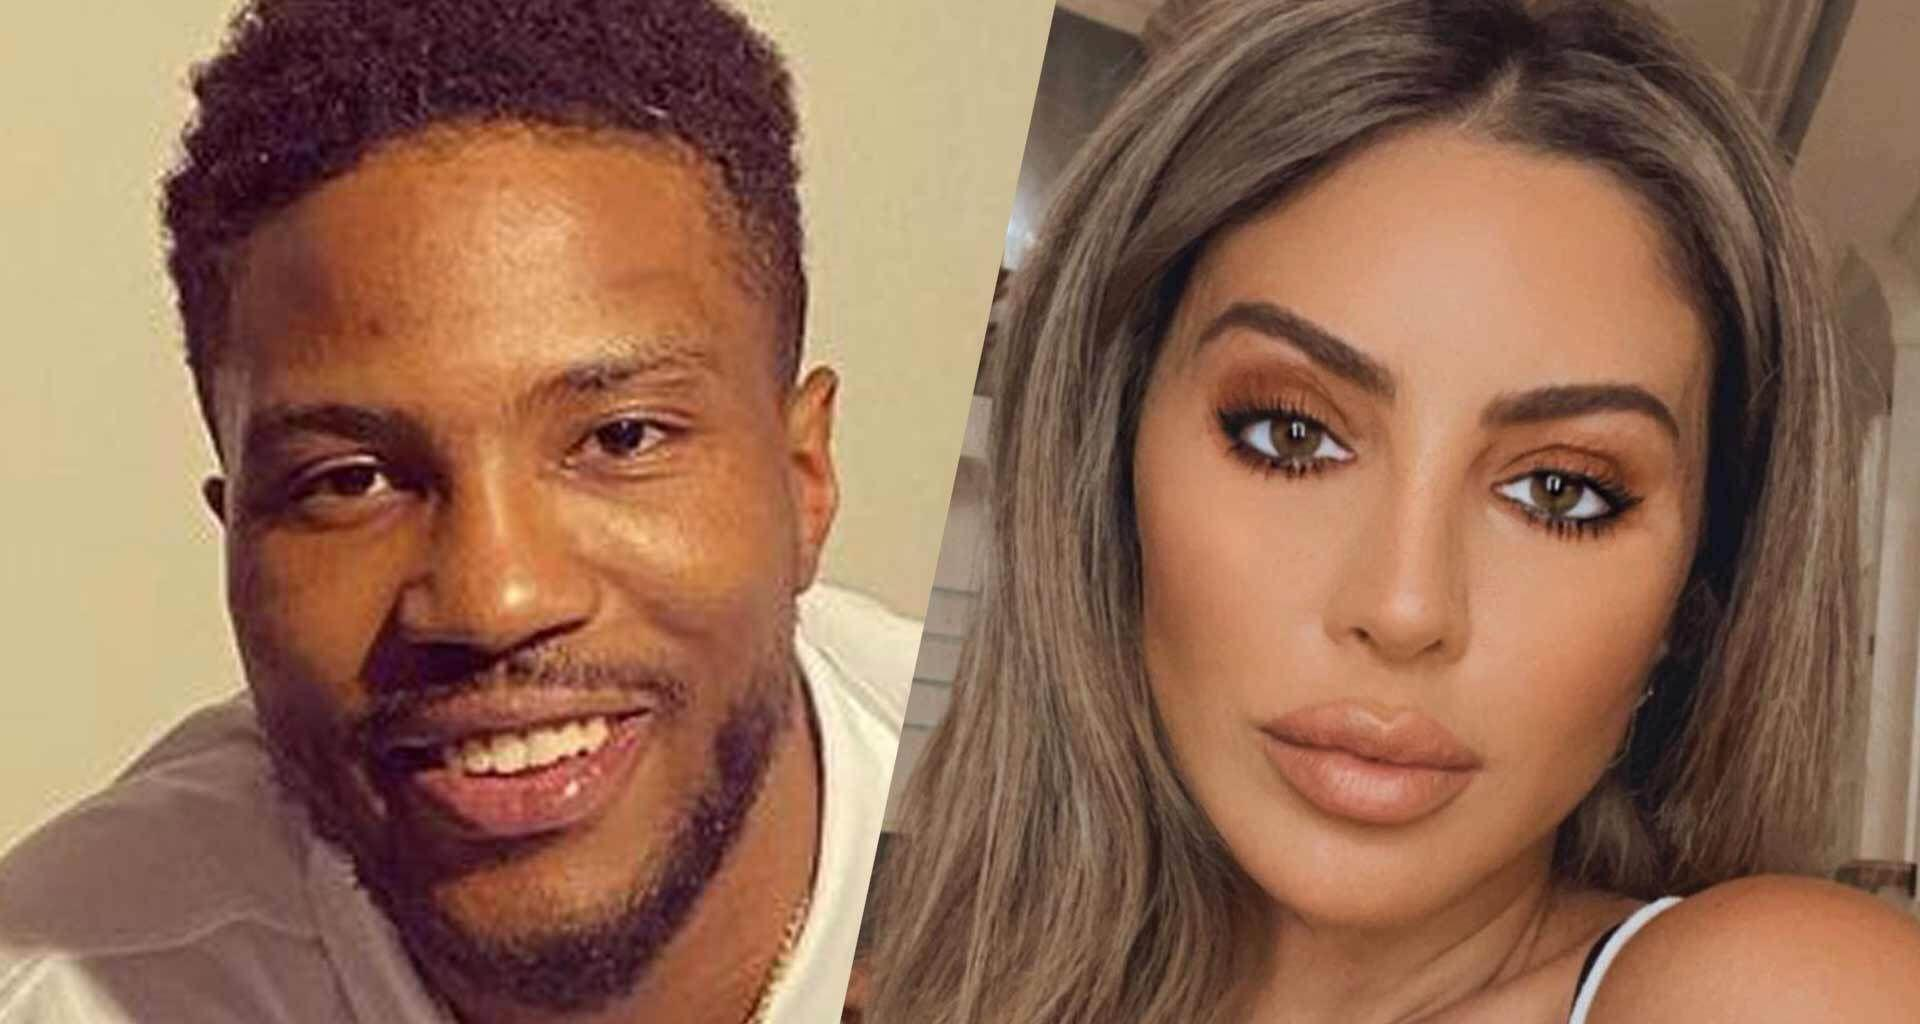 Larsa Pippen Opens Up About Dating Malik Beasley While He Was Still Married - 'They Had Issues Before'